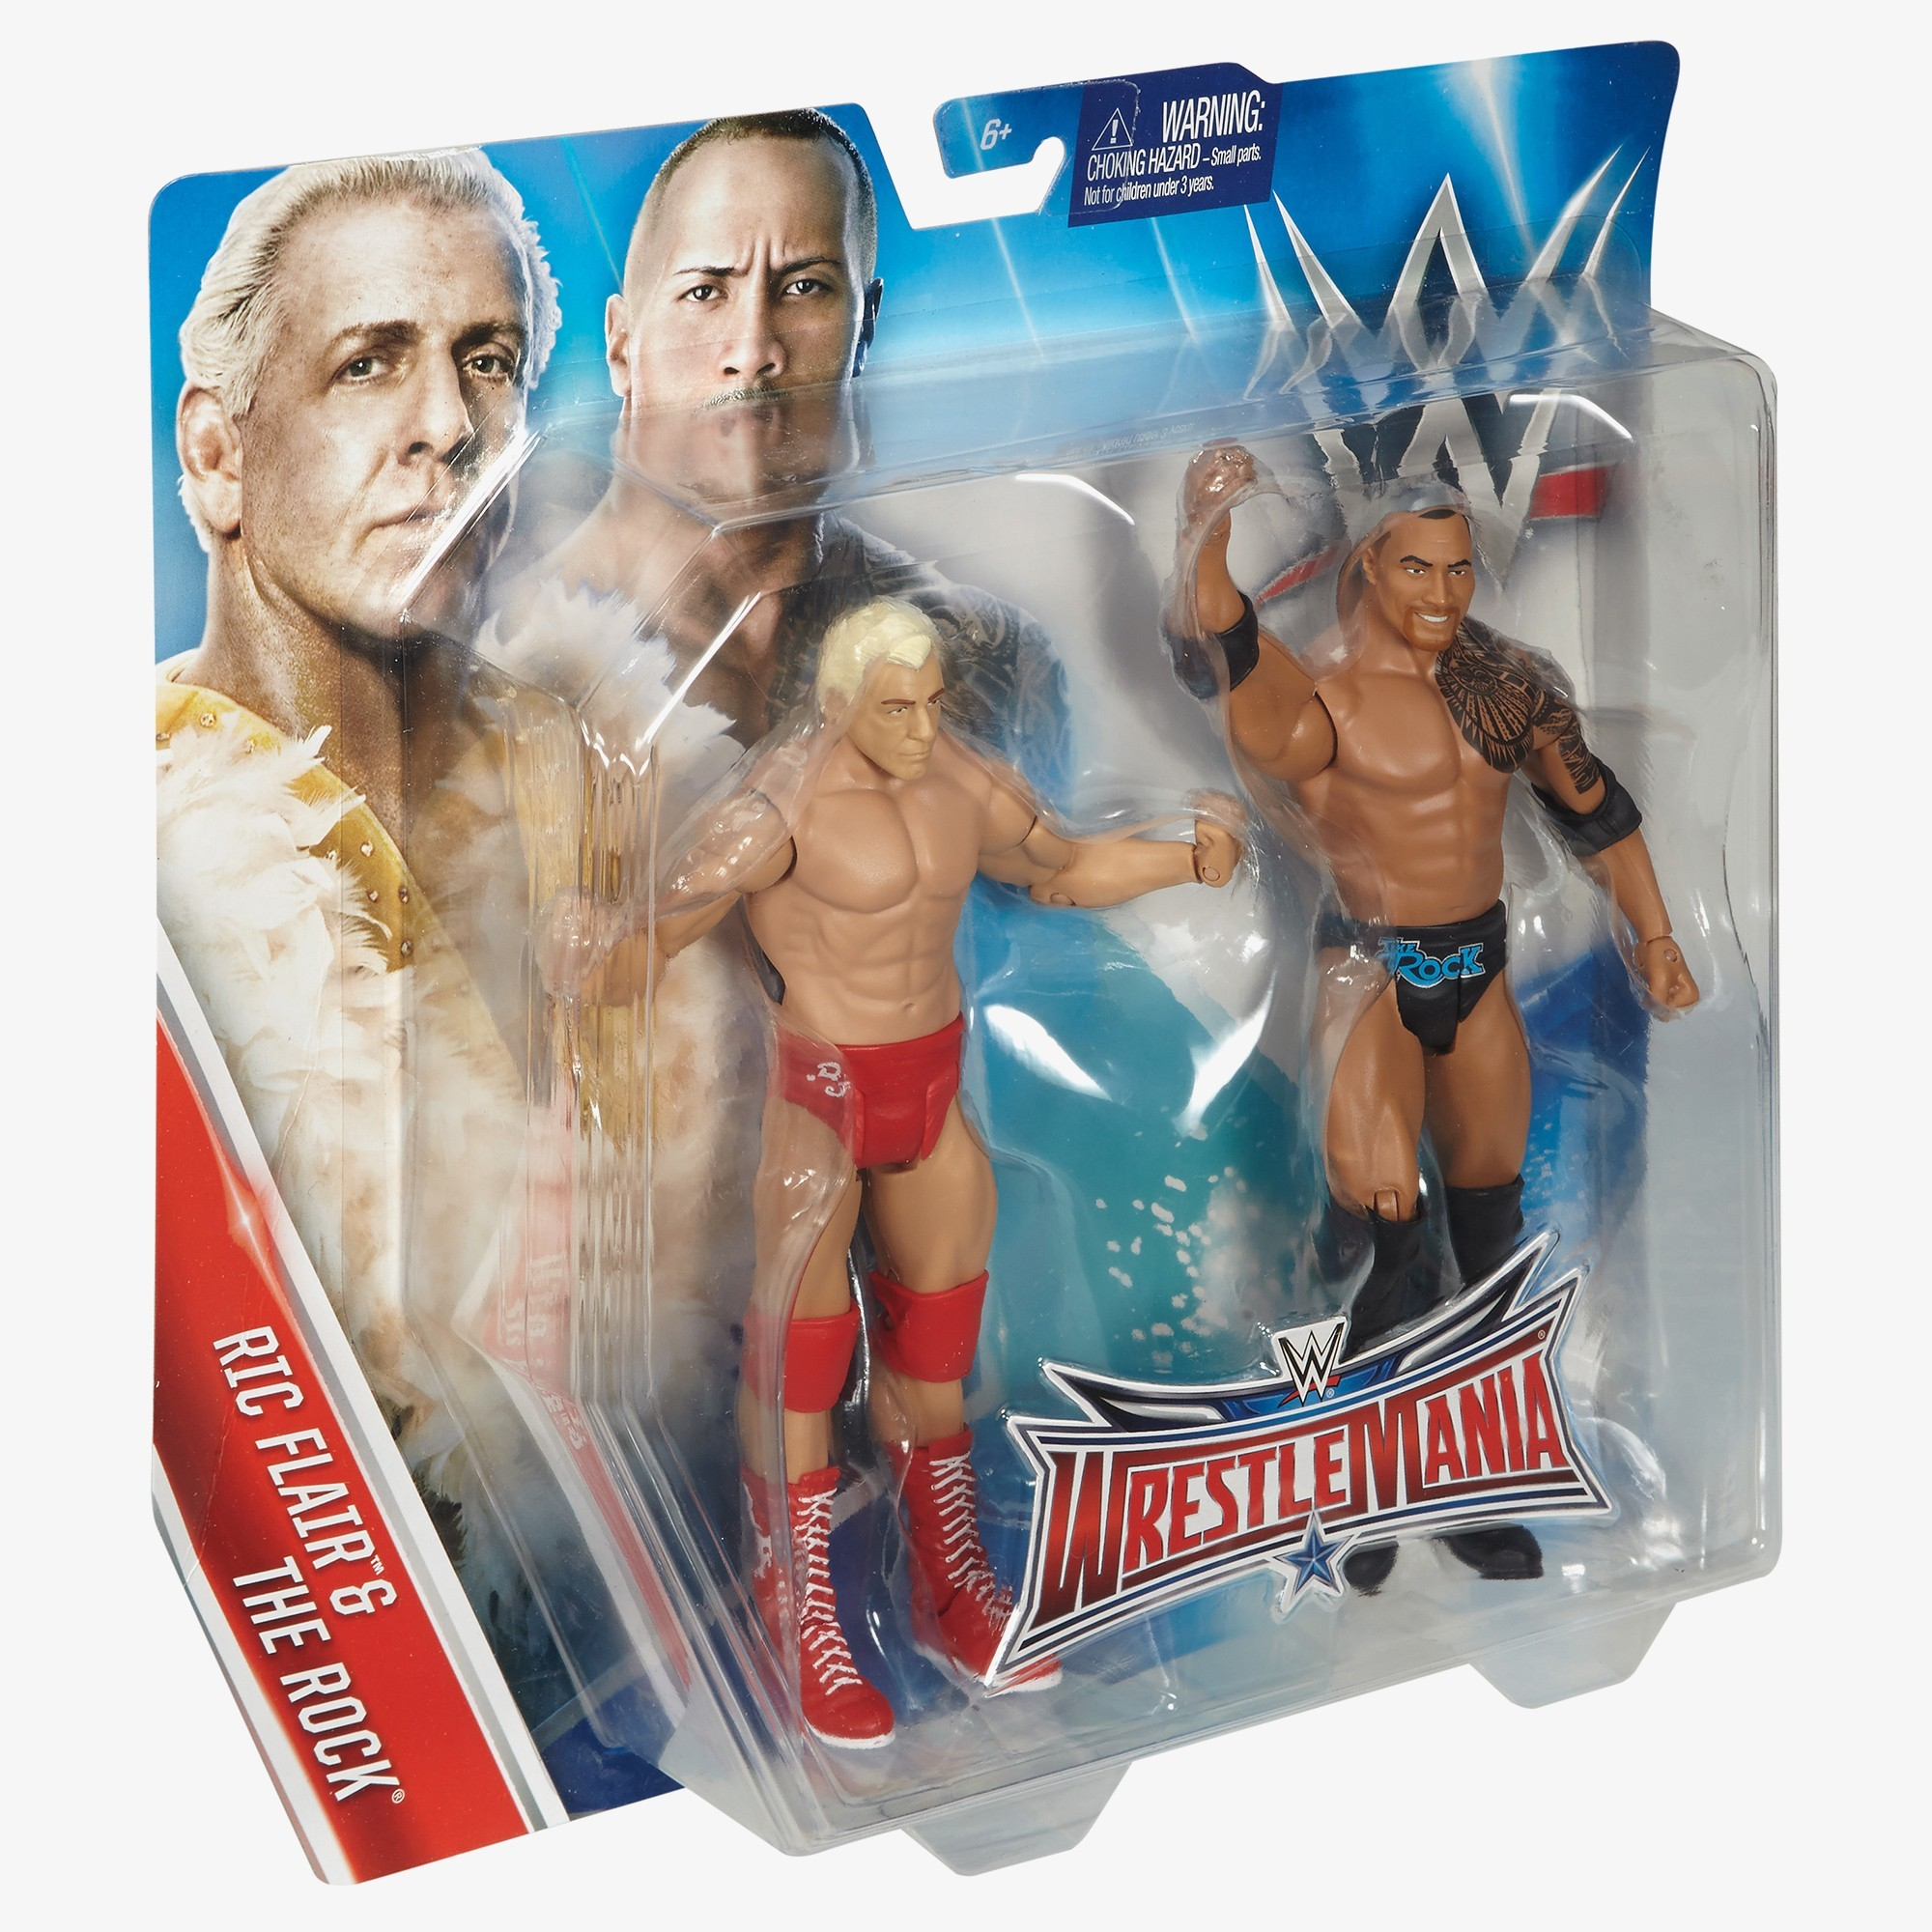 Wrestling Bettwäsche Ric Flair And The Rock Wwe Battle Pack Wrestlemania 32 Series